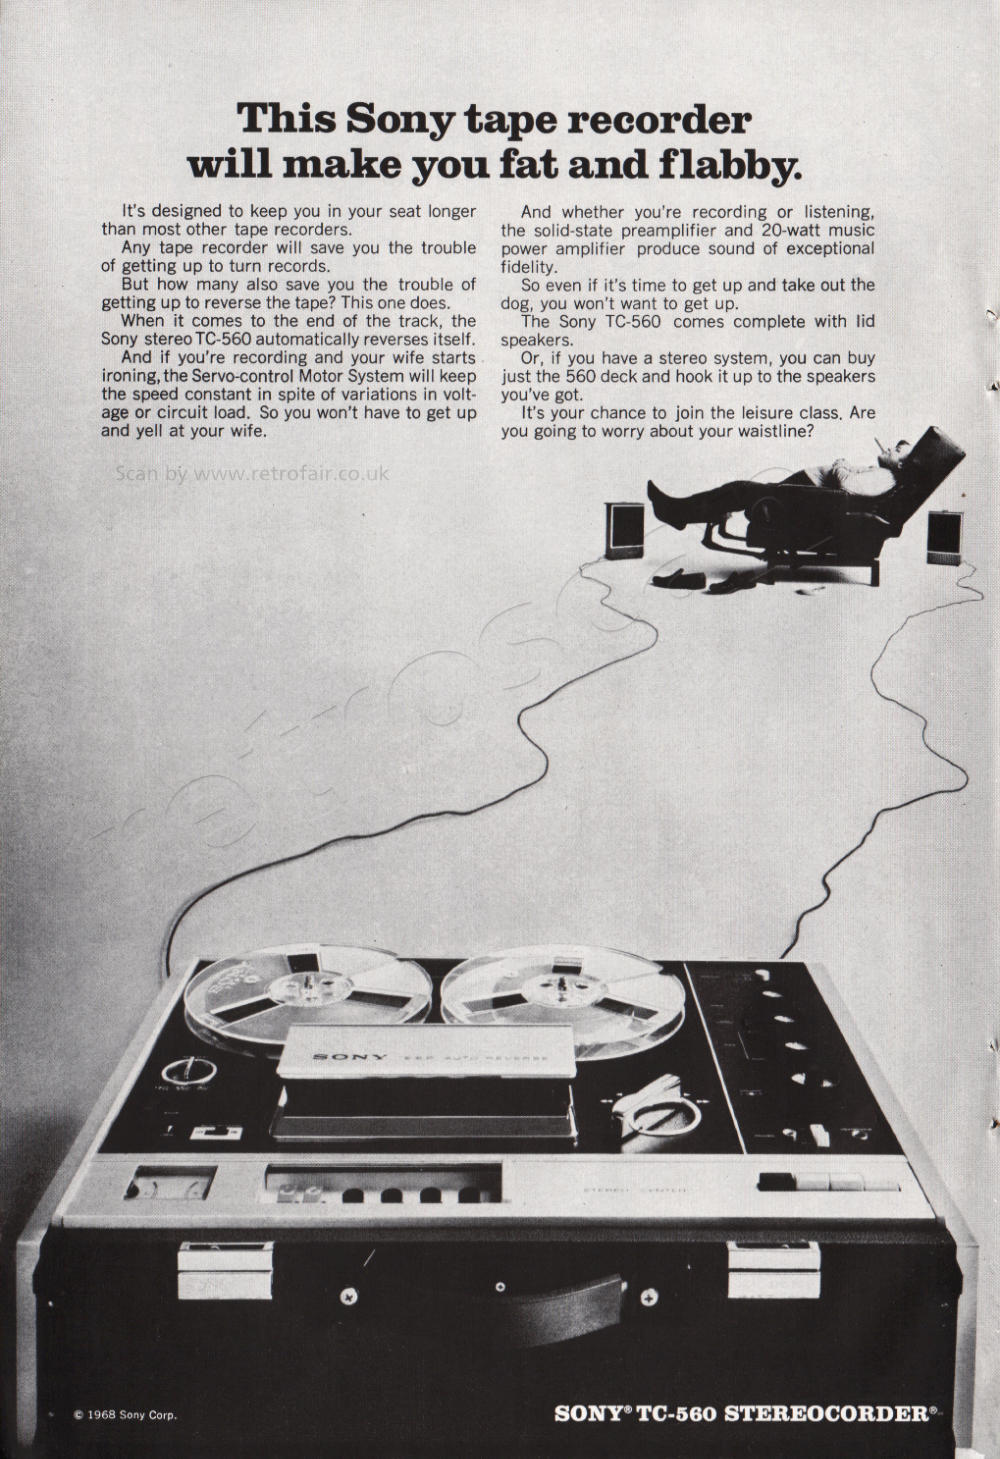 1968 Sony Tape Recorders - unframed vintage ad